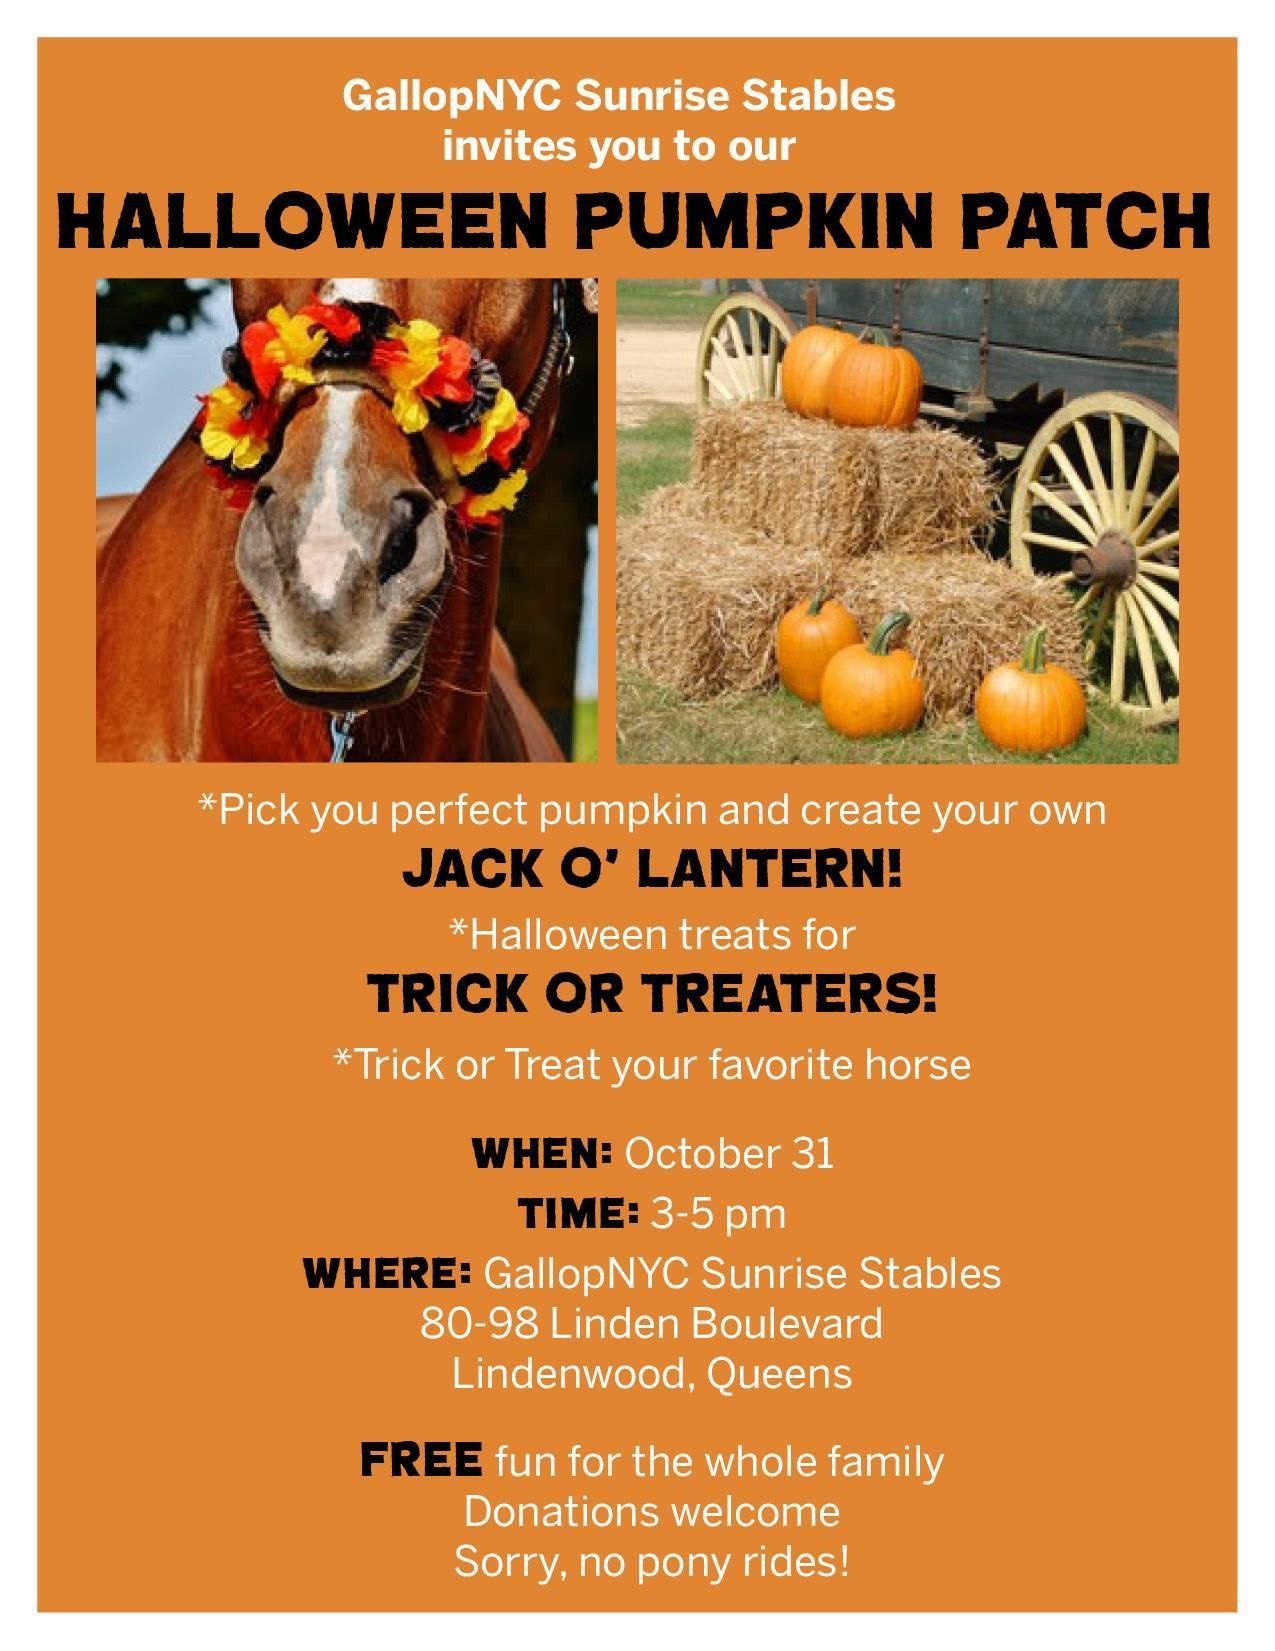 Halloween Pumpkin Patch at  GallopNYC Sunrise Stables